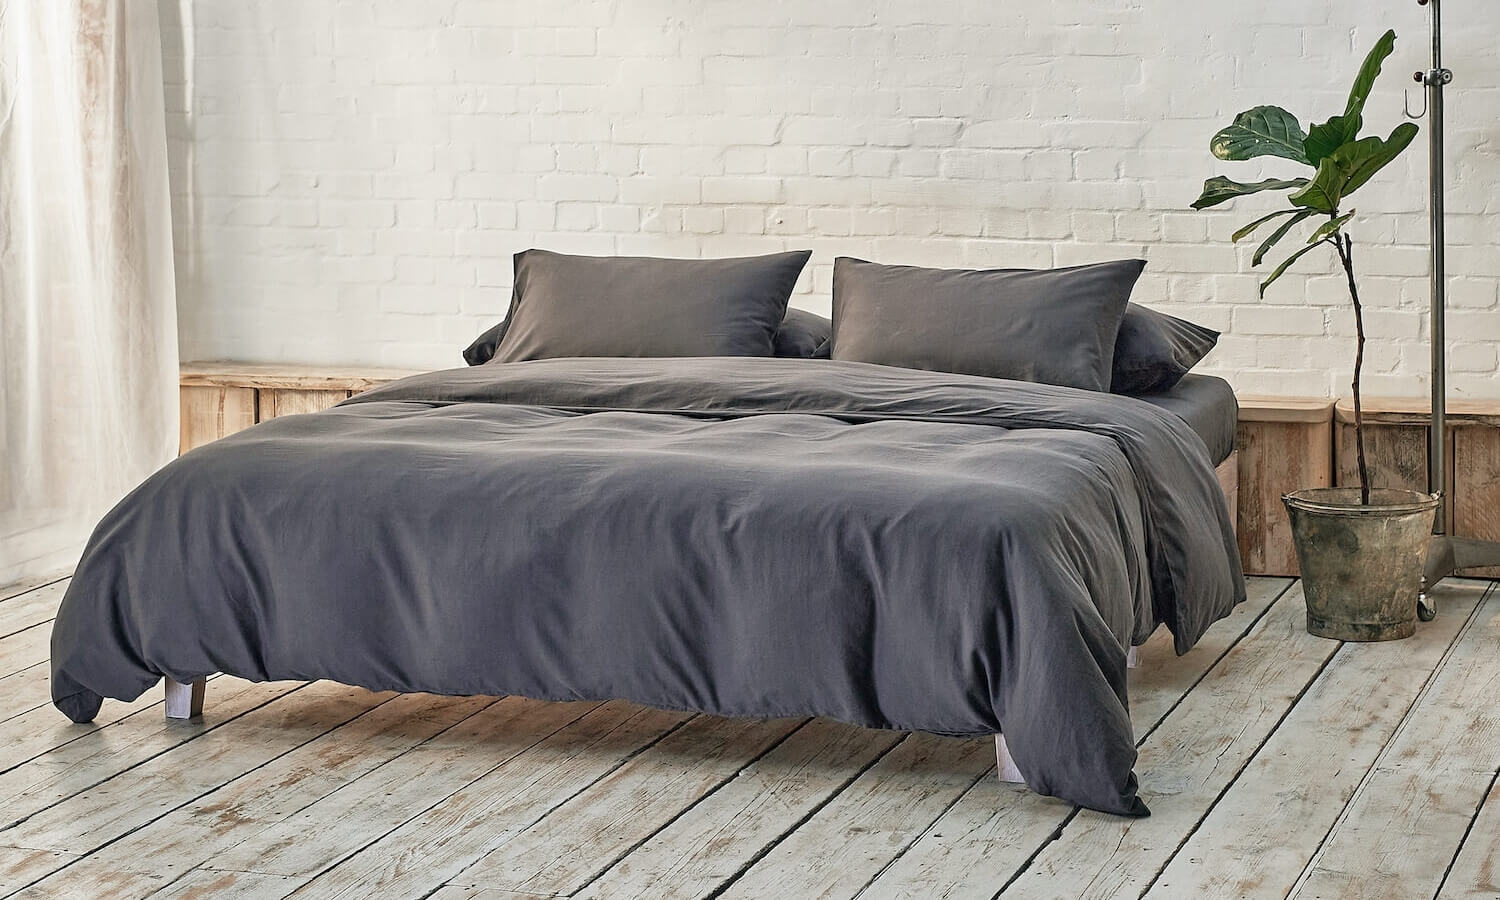 dark grey duvet cover, two pillowcases, and bottom sheet on double bed in apartment with plant and wooden flooring